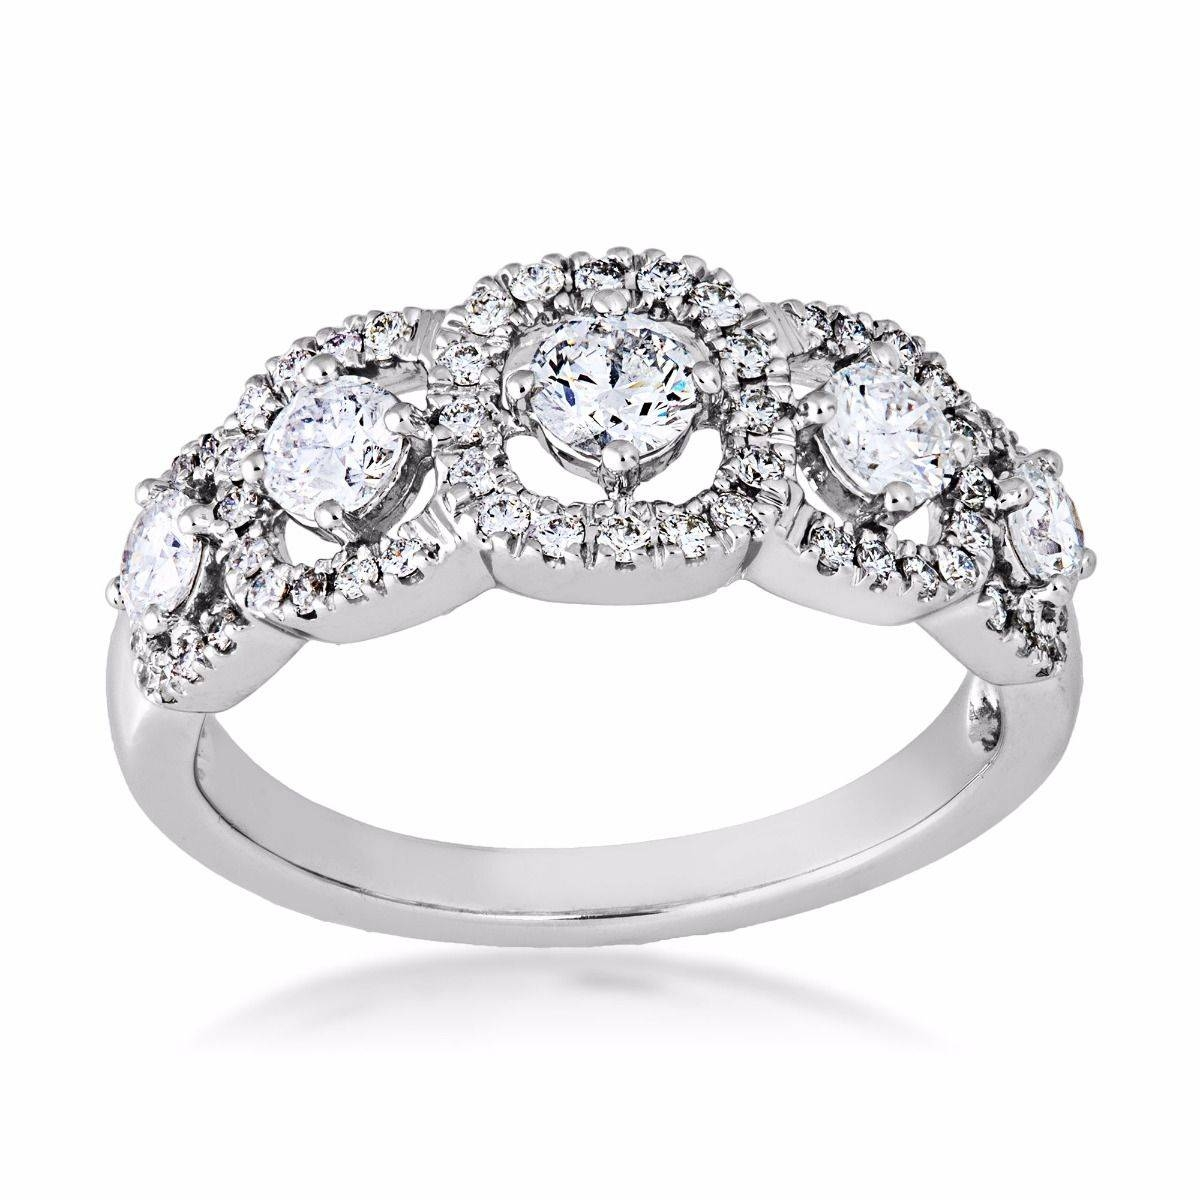 Women's Diamond Anniversary Bands – Shop Anniversary Rings, Bands Regarding Current Diamond Anniversary Rings (View 25 of 25)